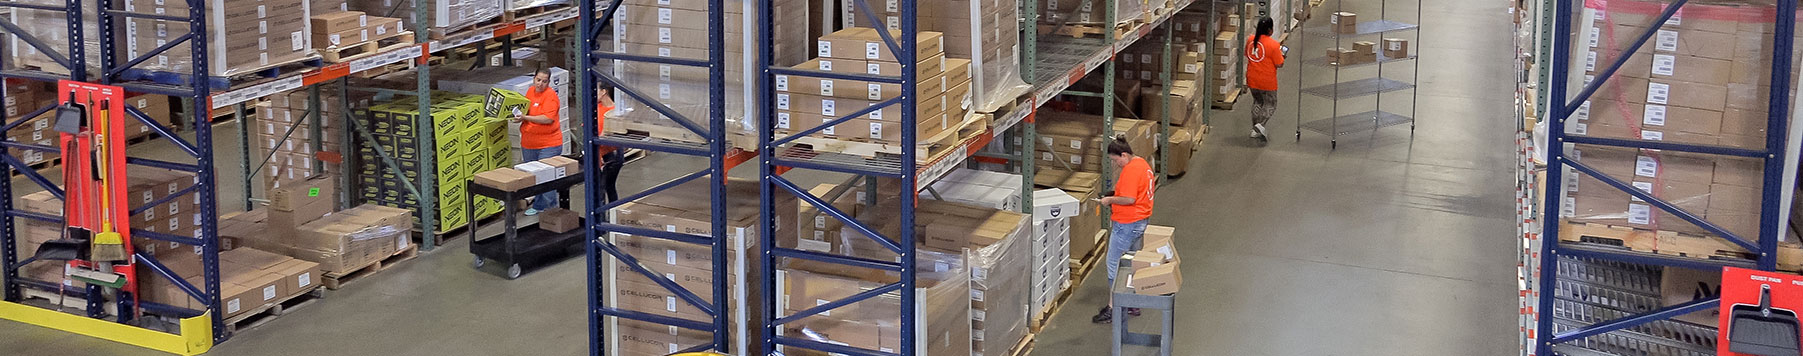 warehouse labor management